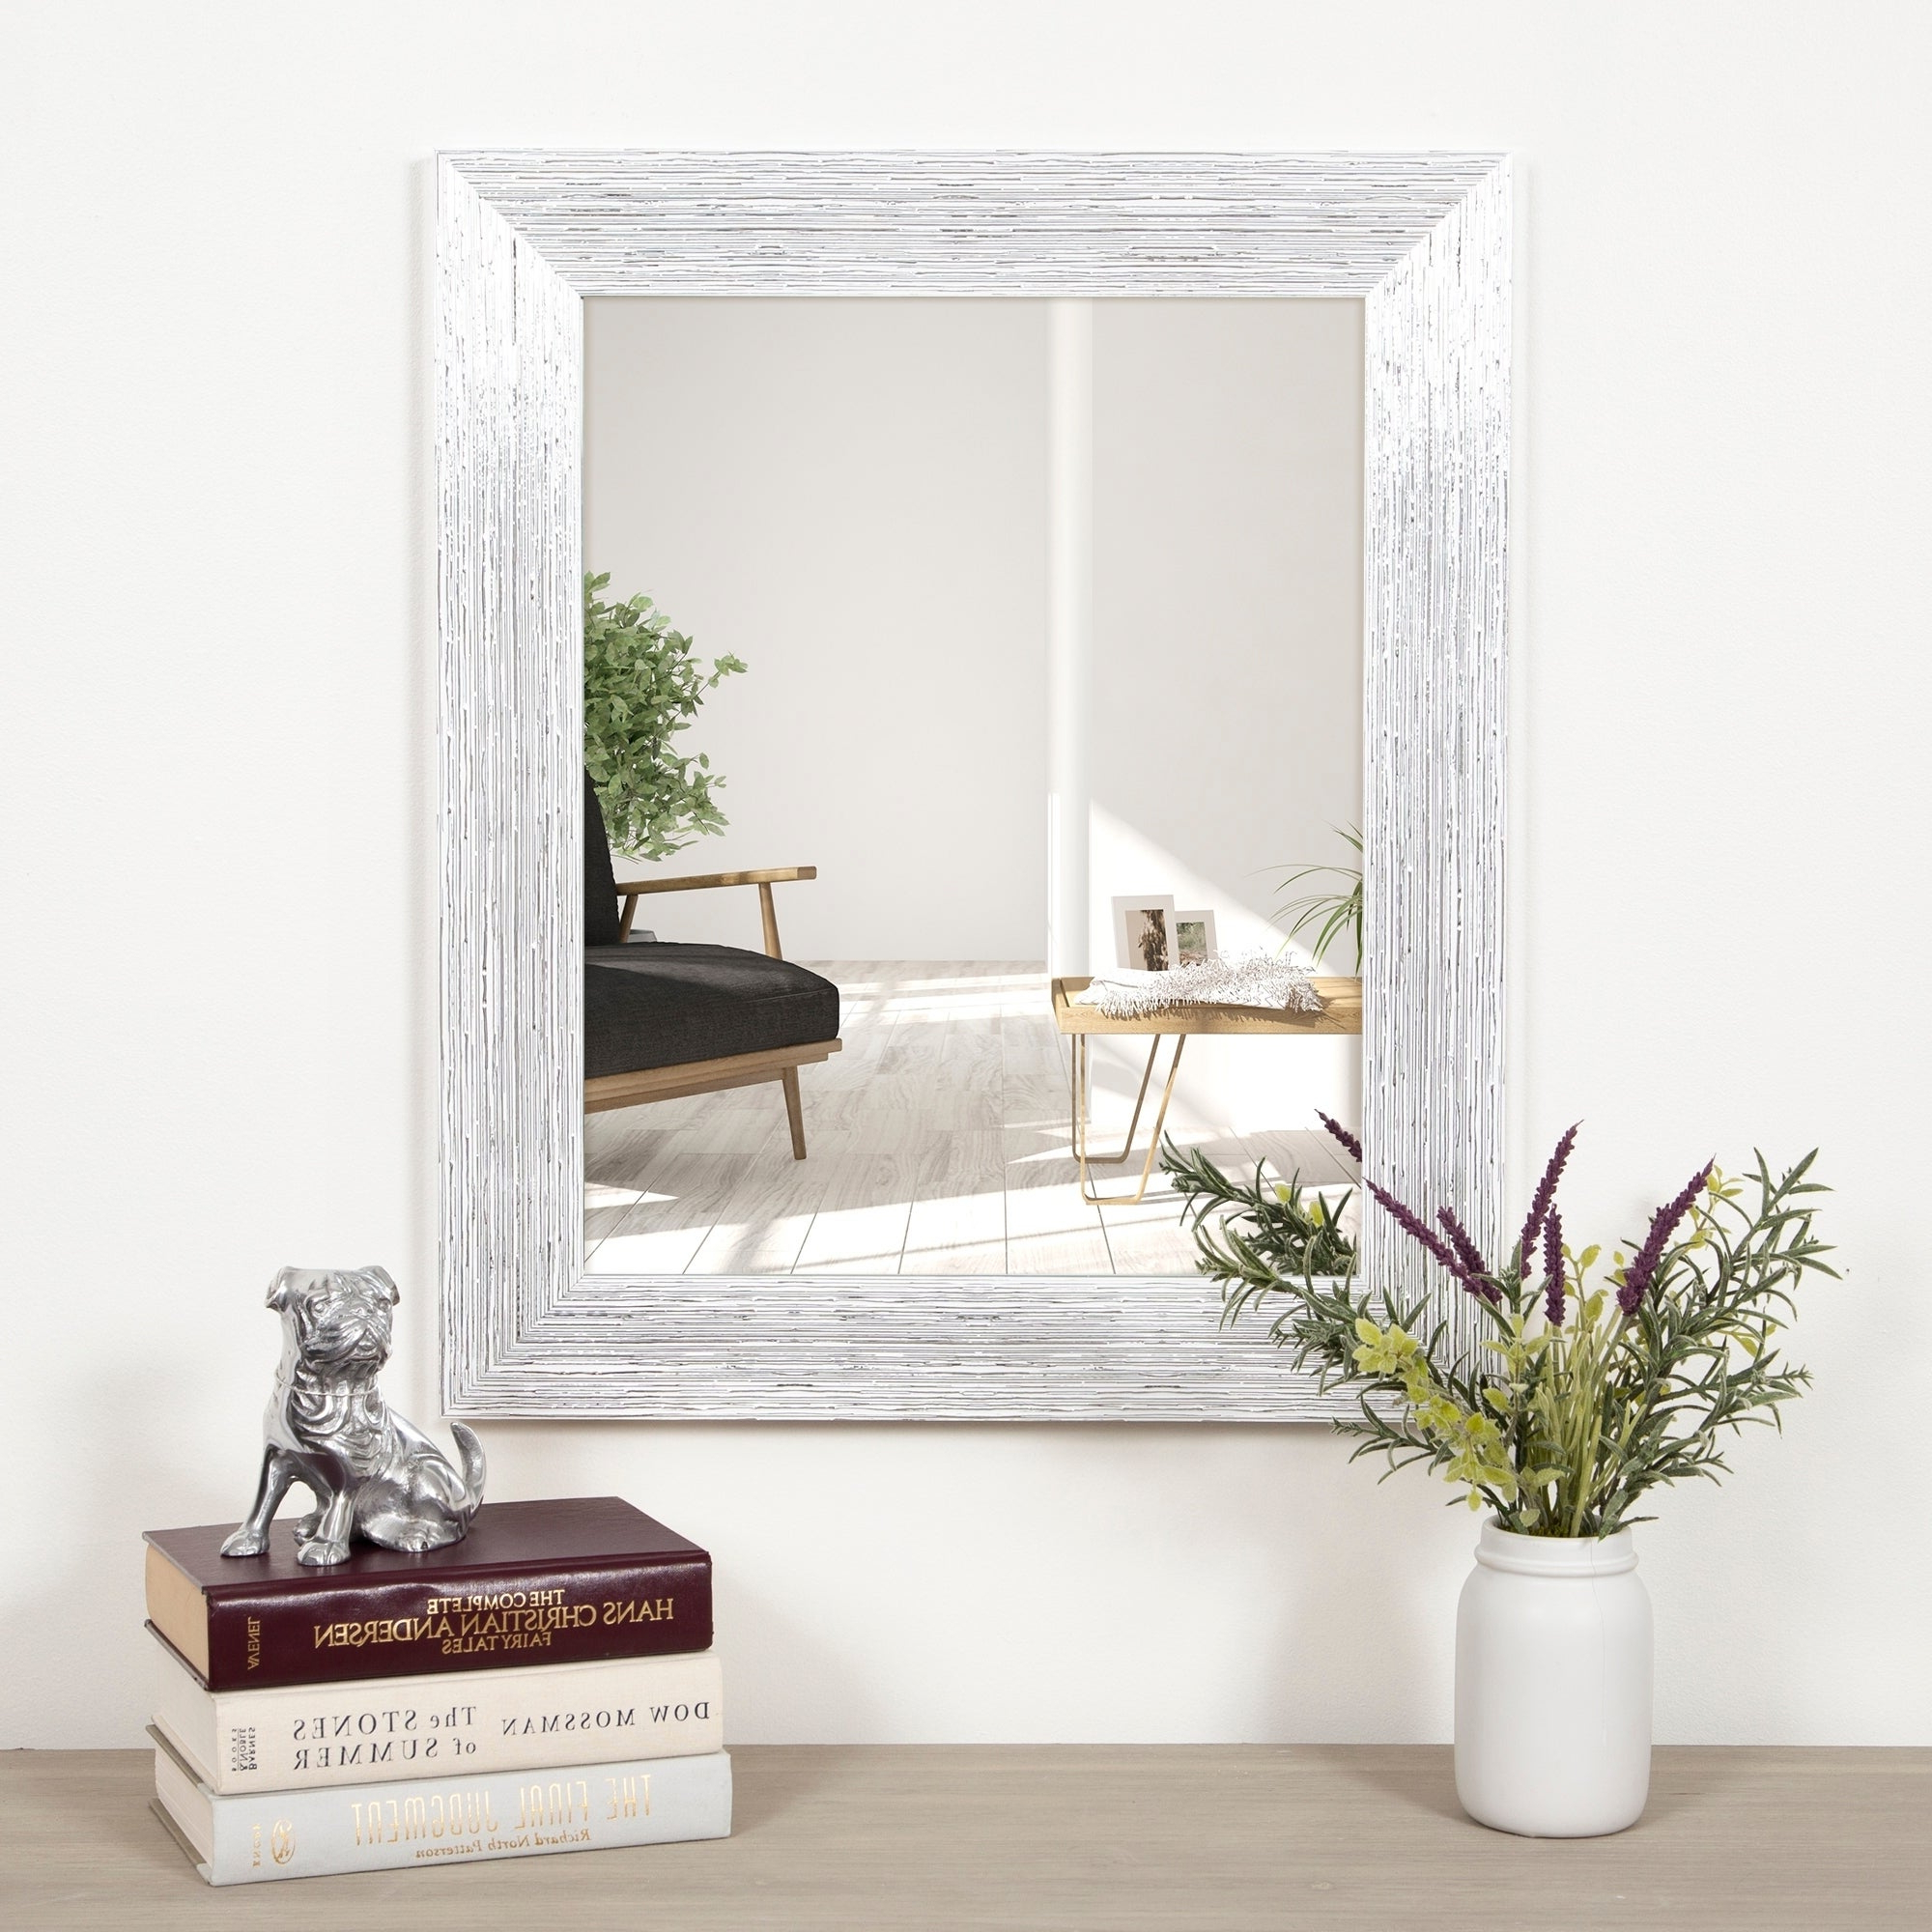 Gallery Solutions Textured White And Silver Framed Accent Wall Mirror Regarding Most Current Accent Wall Mirrors (View 3 of 20)